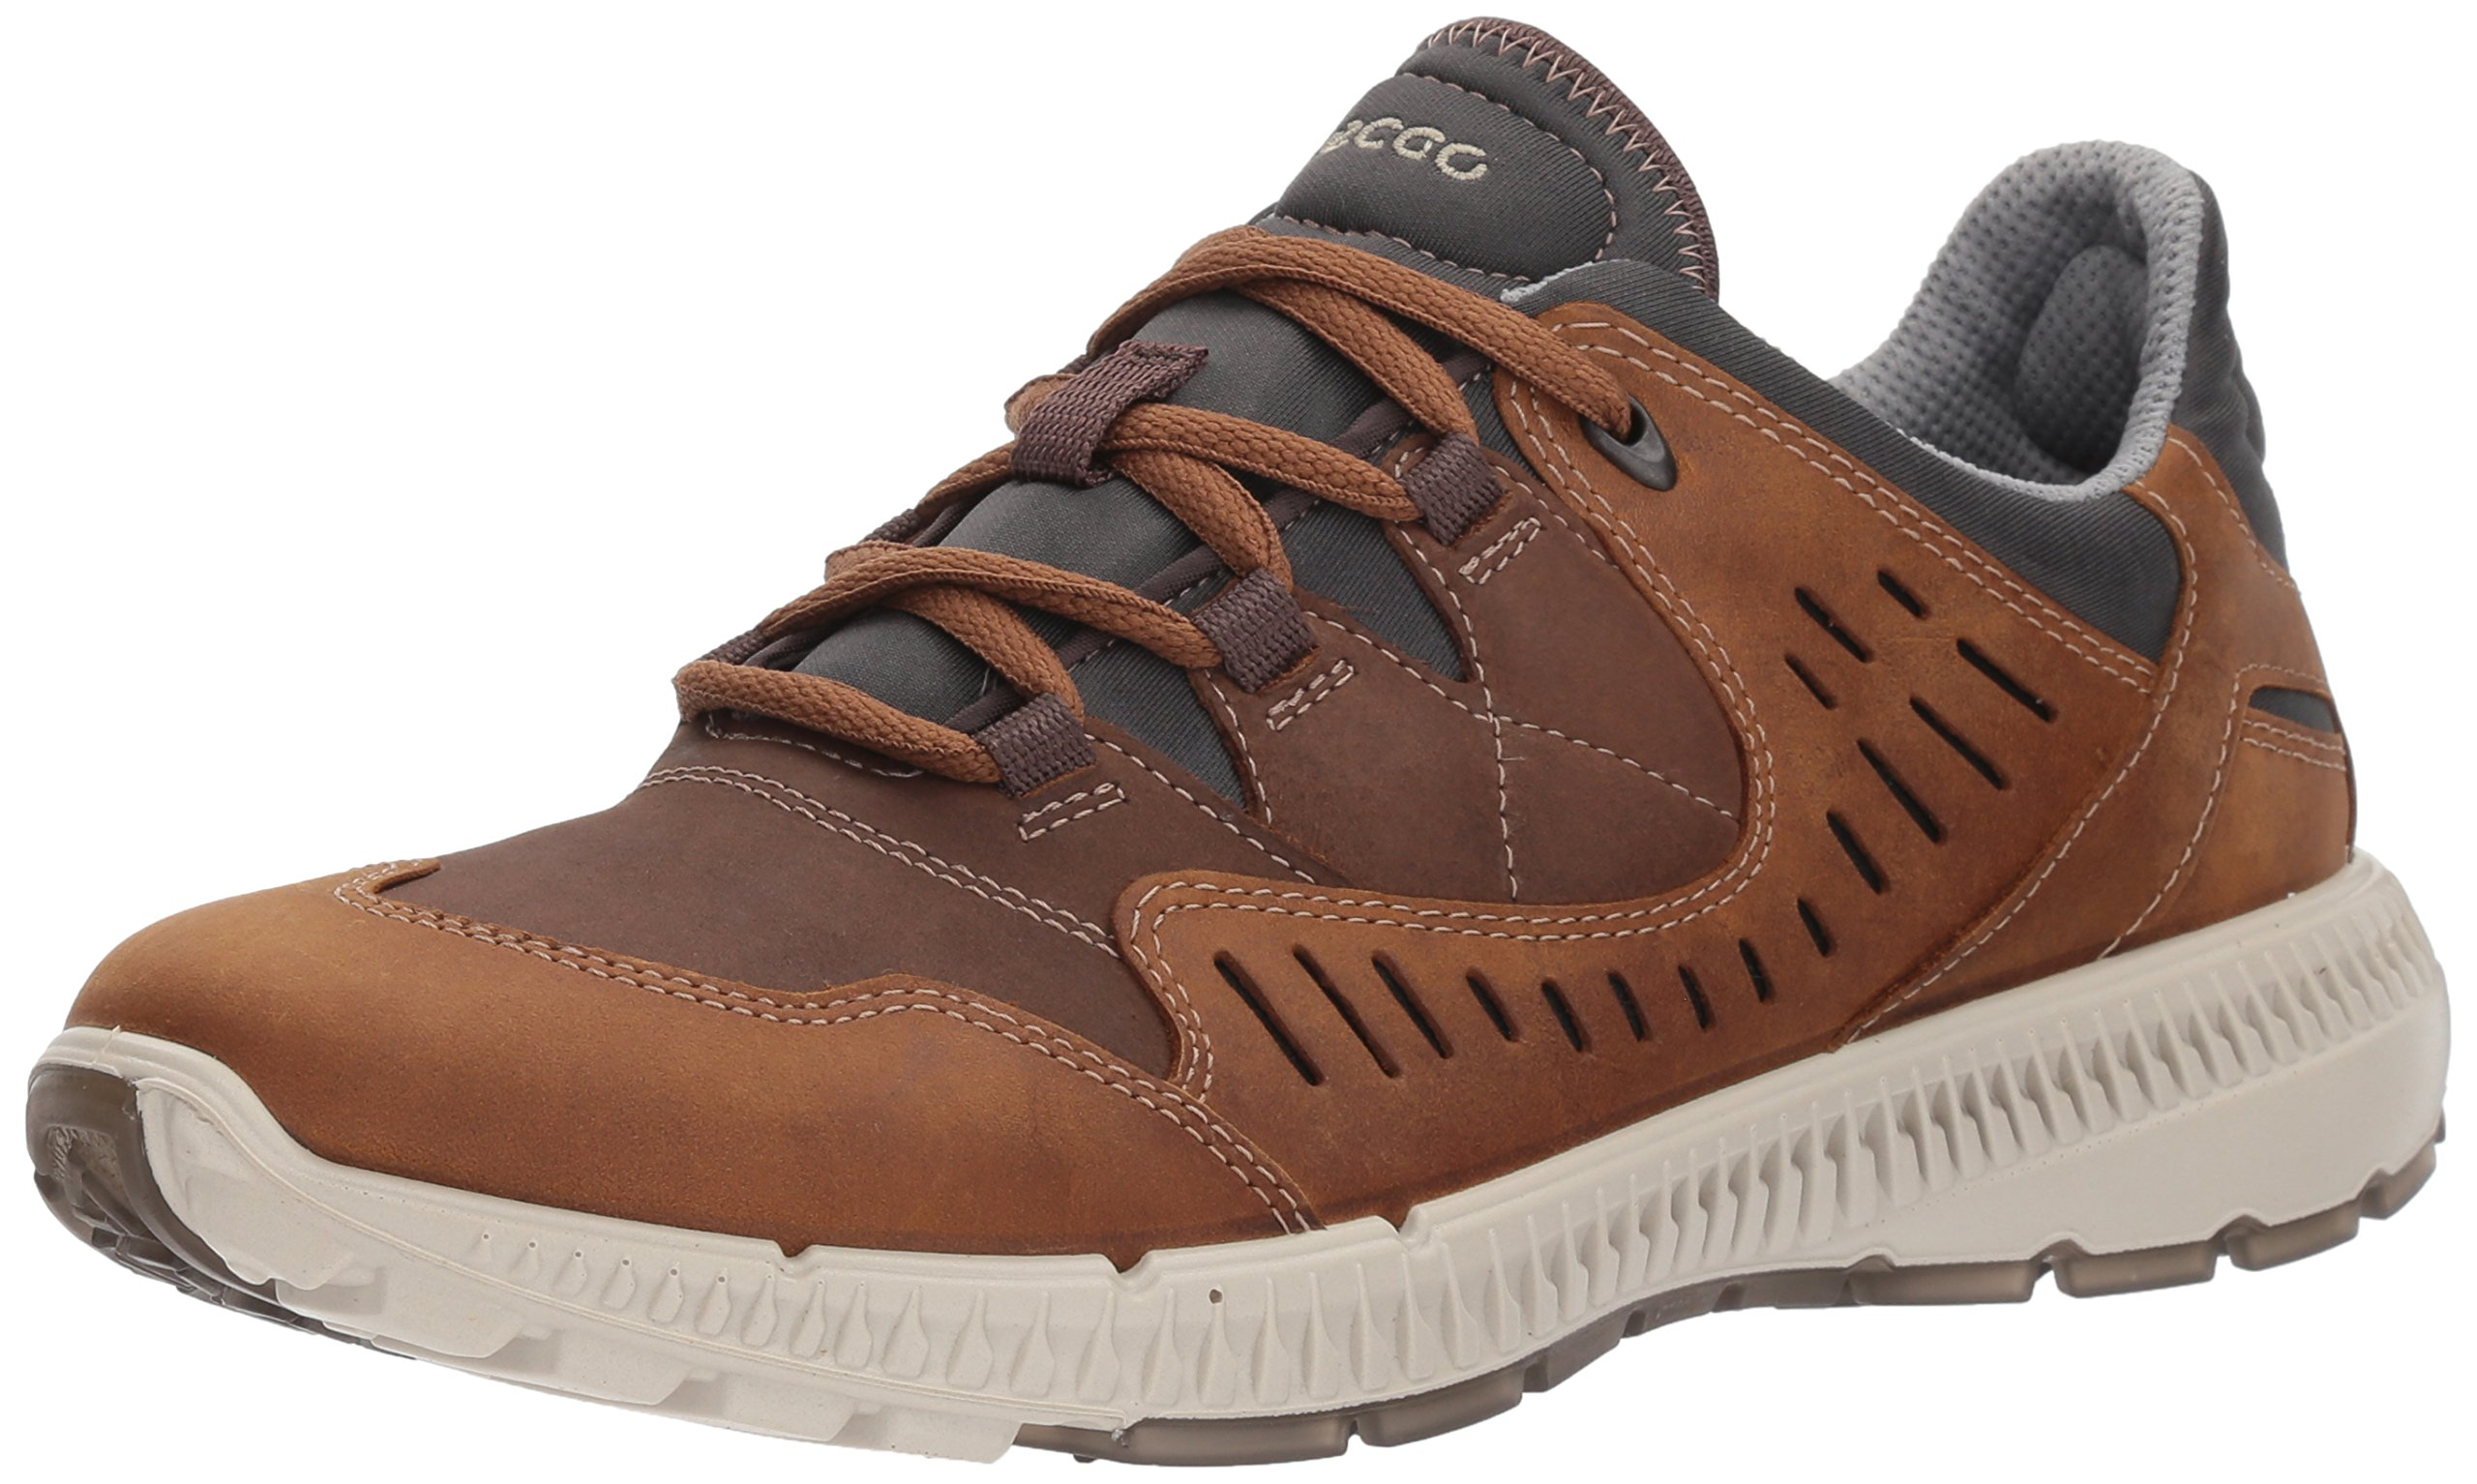 ECCO Women's Terrawalk Trail Runner, Camel/Cocoa Brown, 40 EU/9-9.5 M US by ECCO